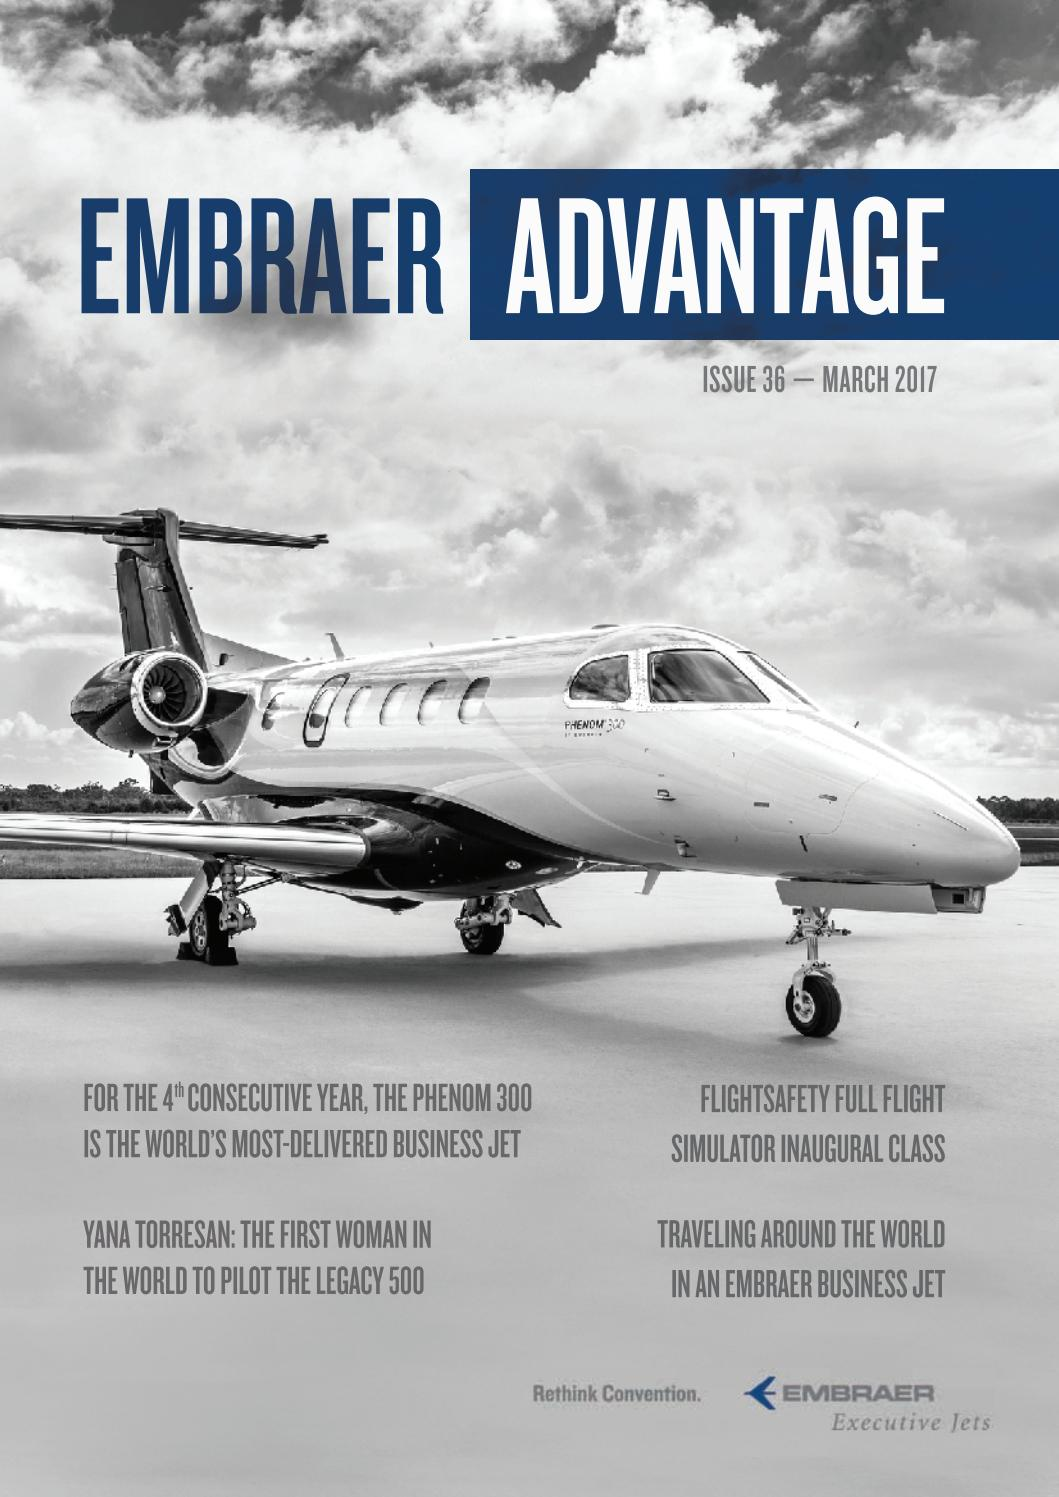 Phenom 300 cockpit phenom executive jet line leaders of innovation - Embraer Advantage 36 Edition Q1 2017 By Embraer Executive Jets Issuu